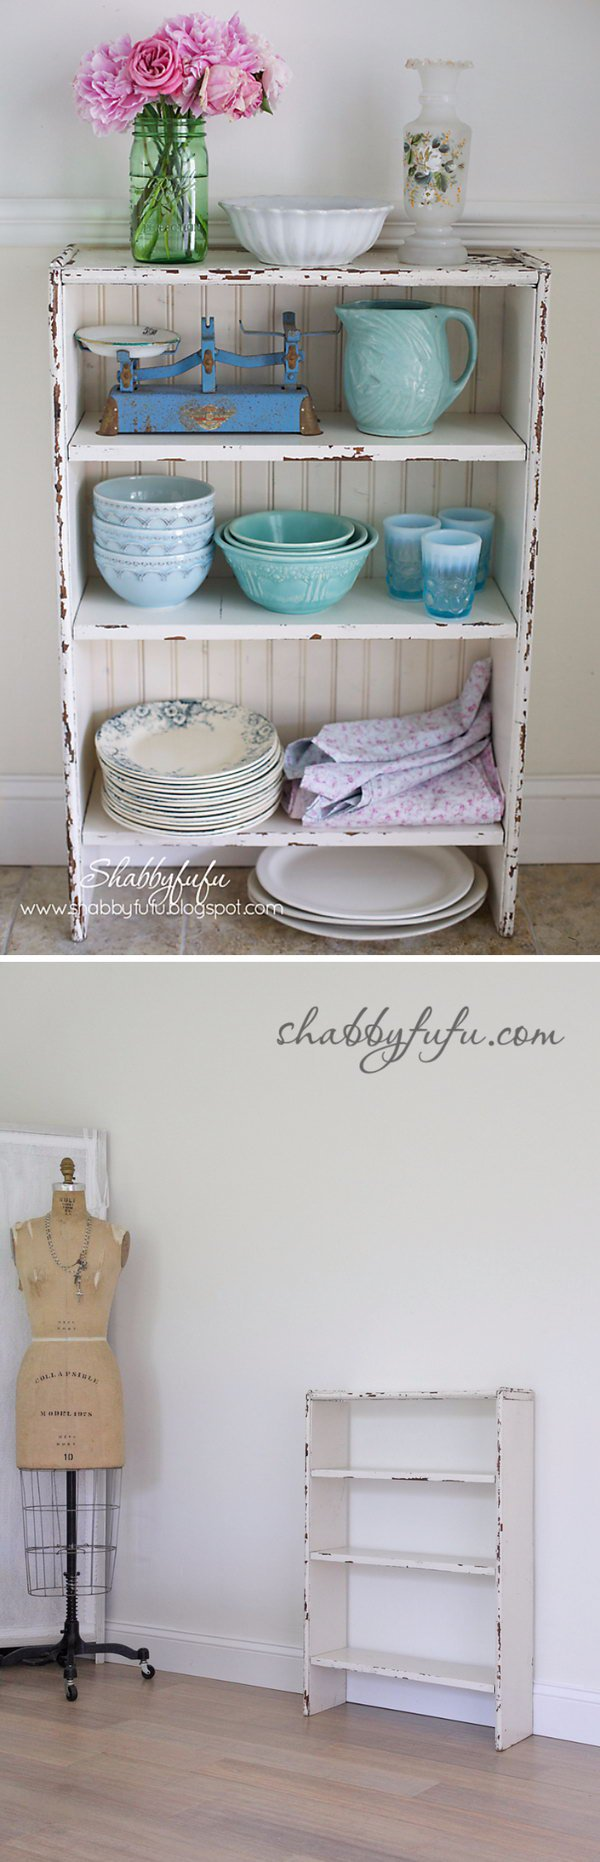 Awesome Diy Shabby Chic Furniture Projects # Muebles Do It Yourself